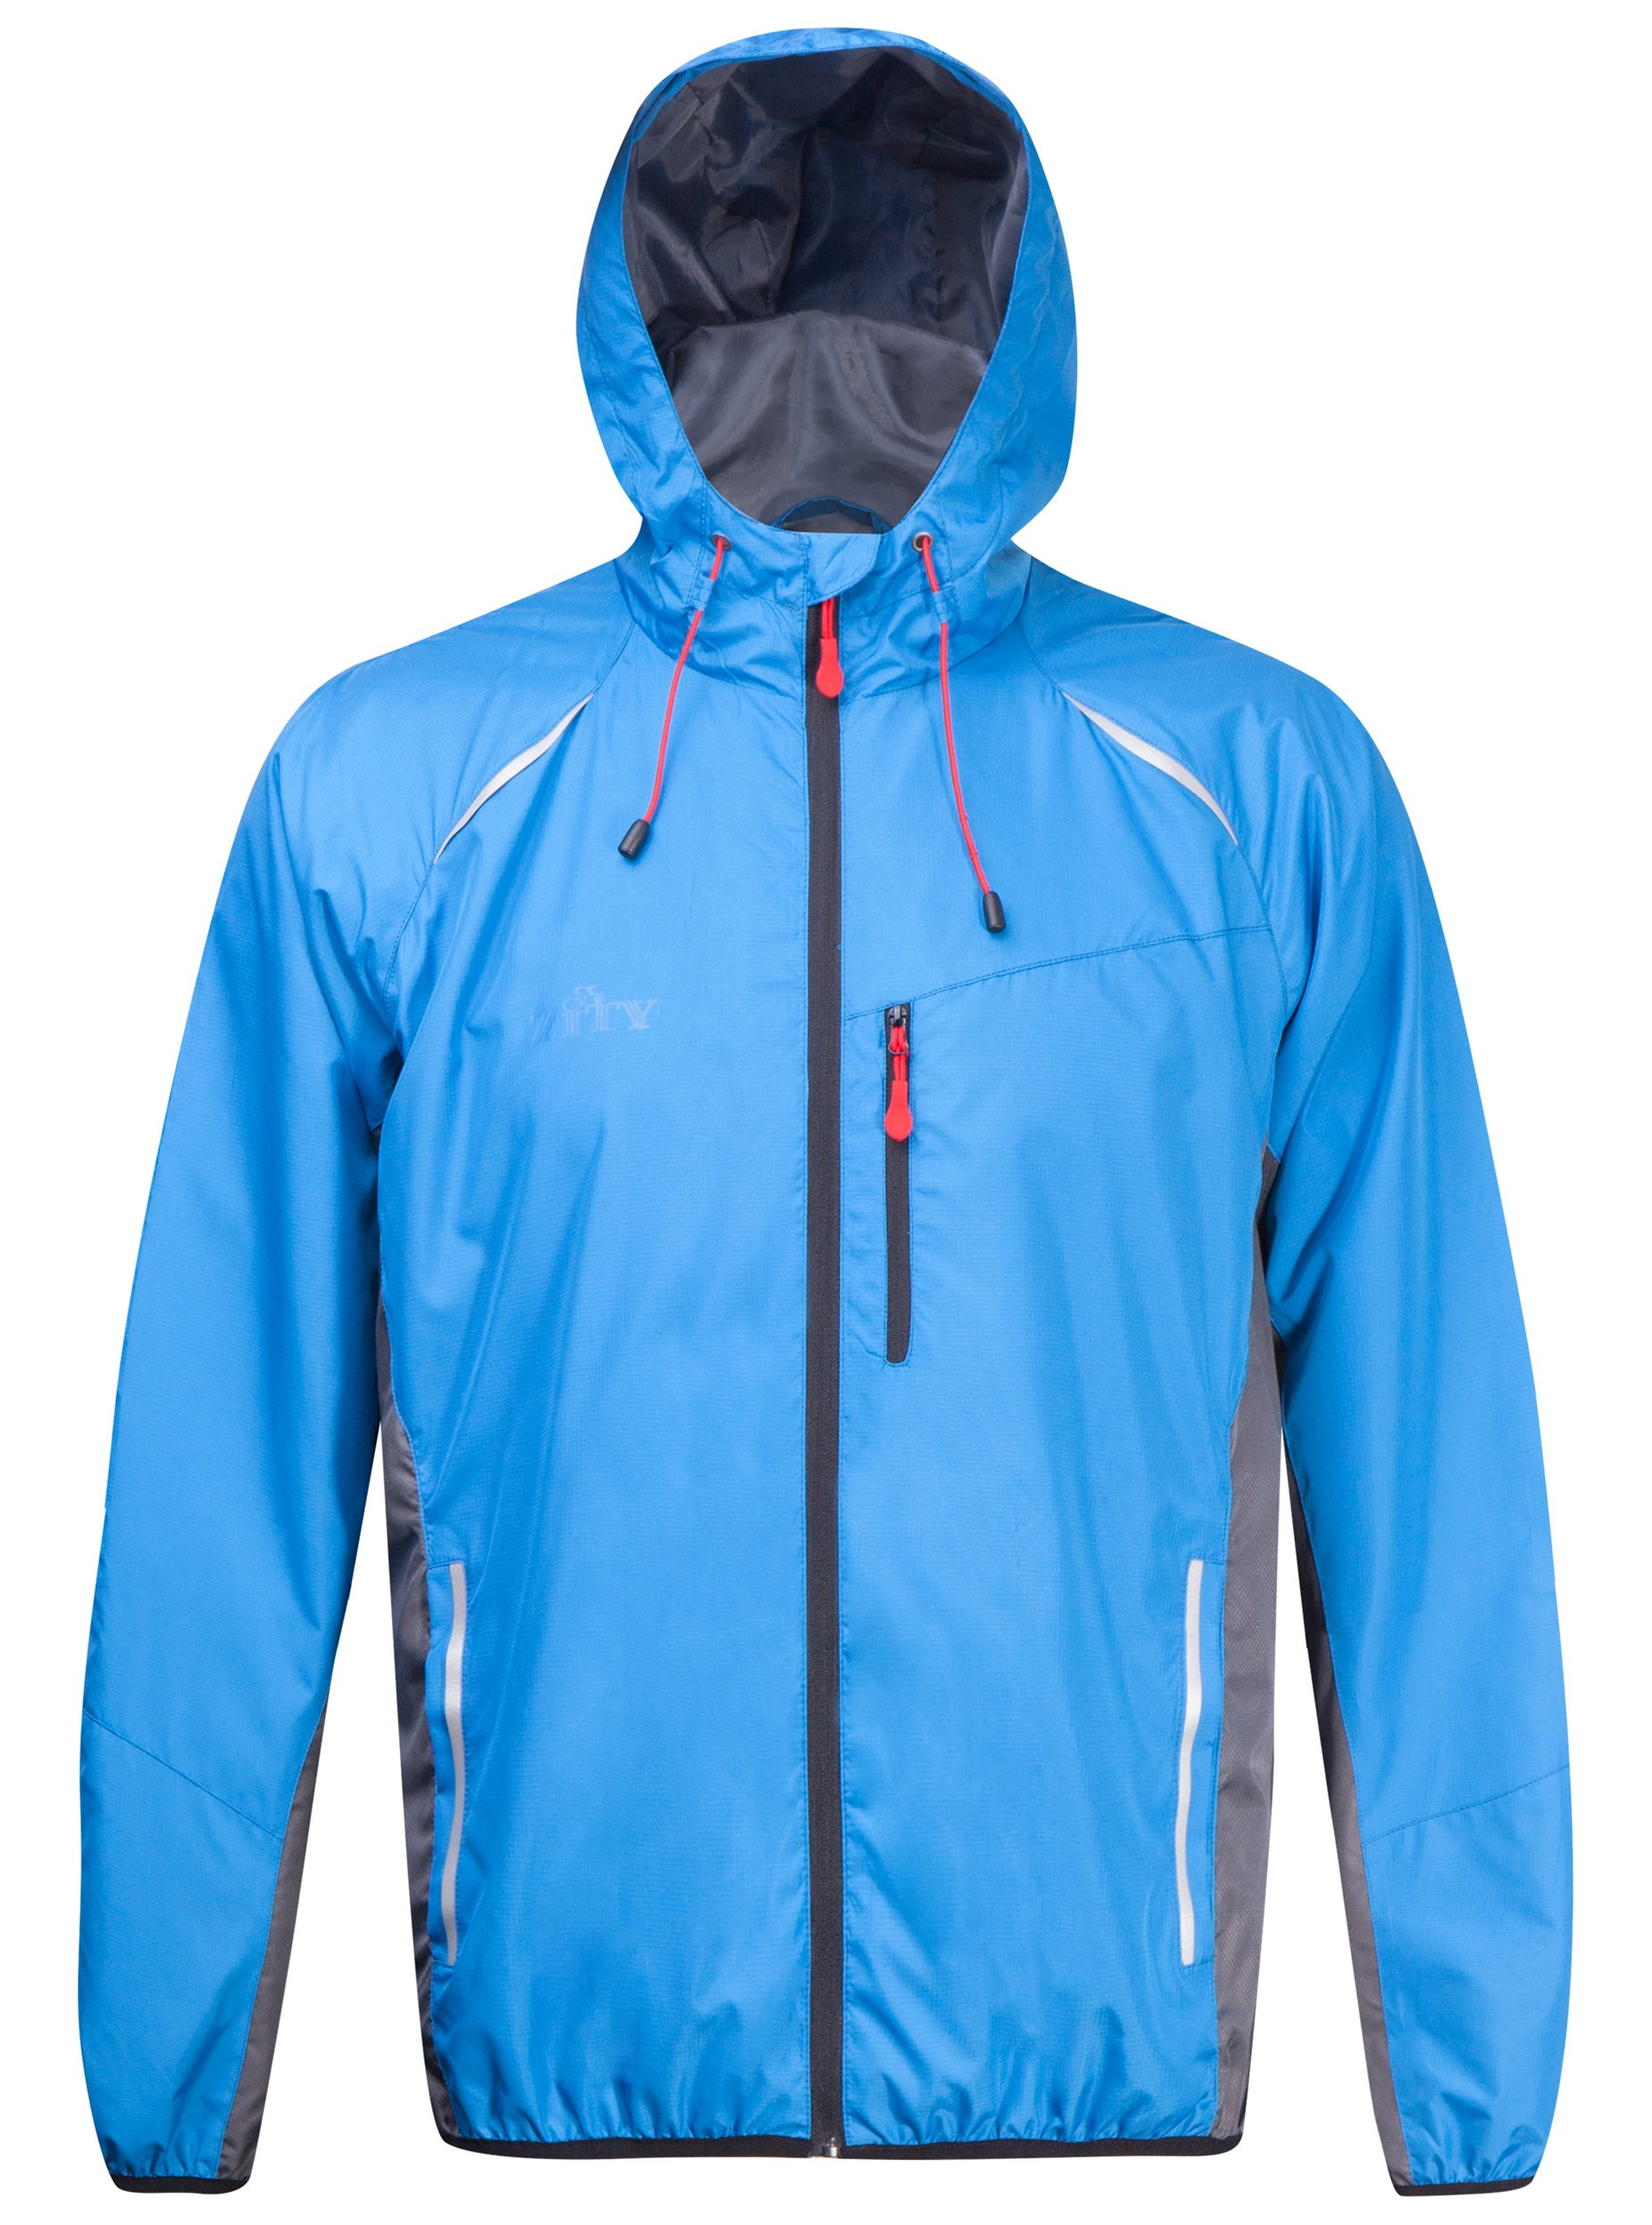 ZITY Men's Hooded Windproof Lightweight Running Jacket Breathable Cycling Wind Jacket